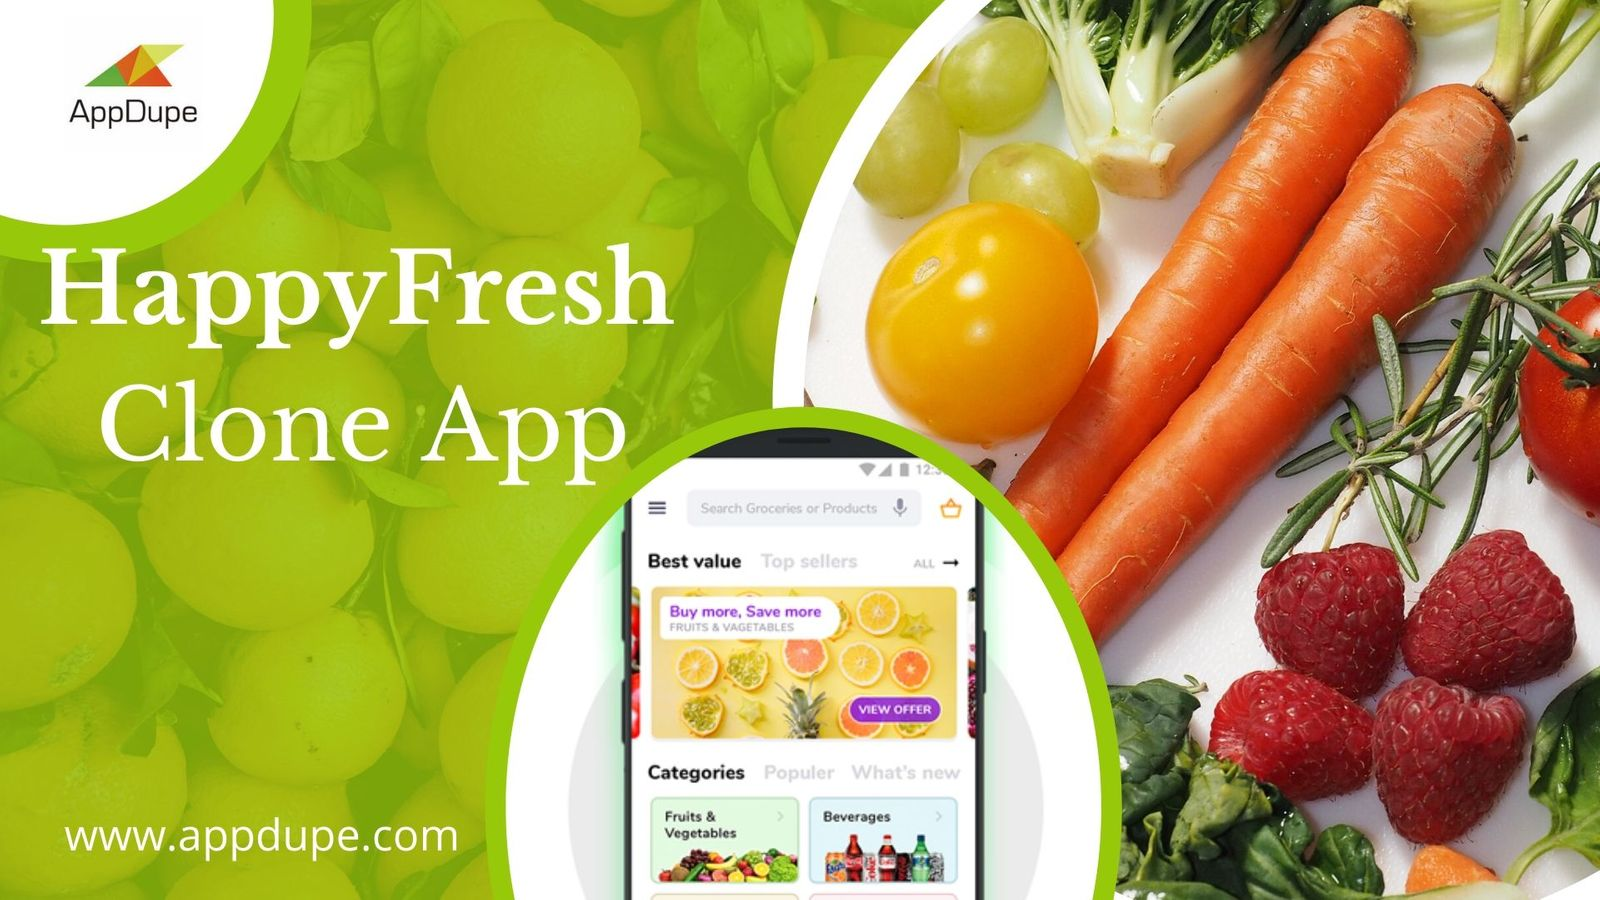 Aspiring to develop a HappyFresh clone? : Here are certain pointers worth considering